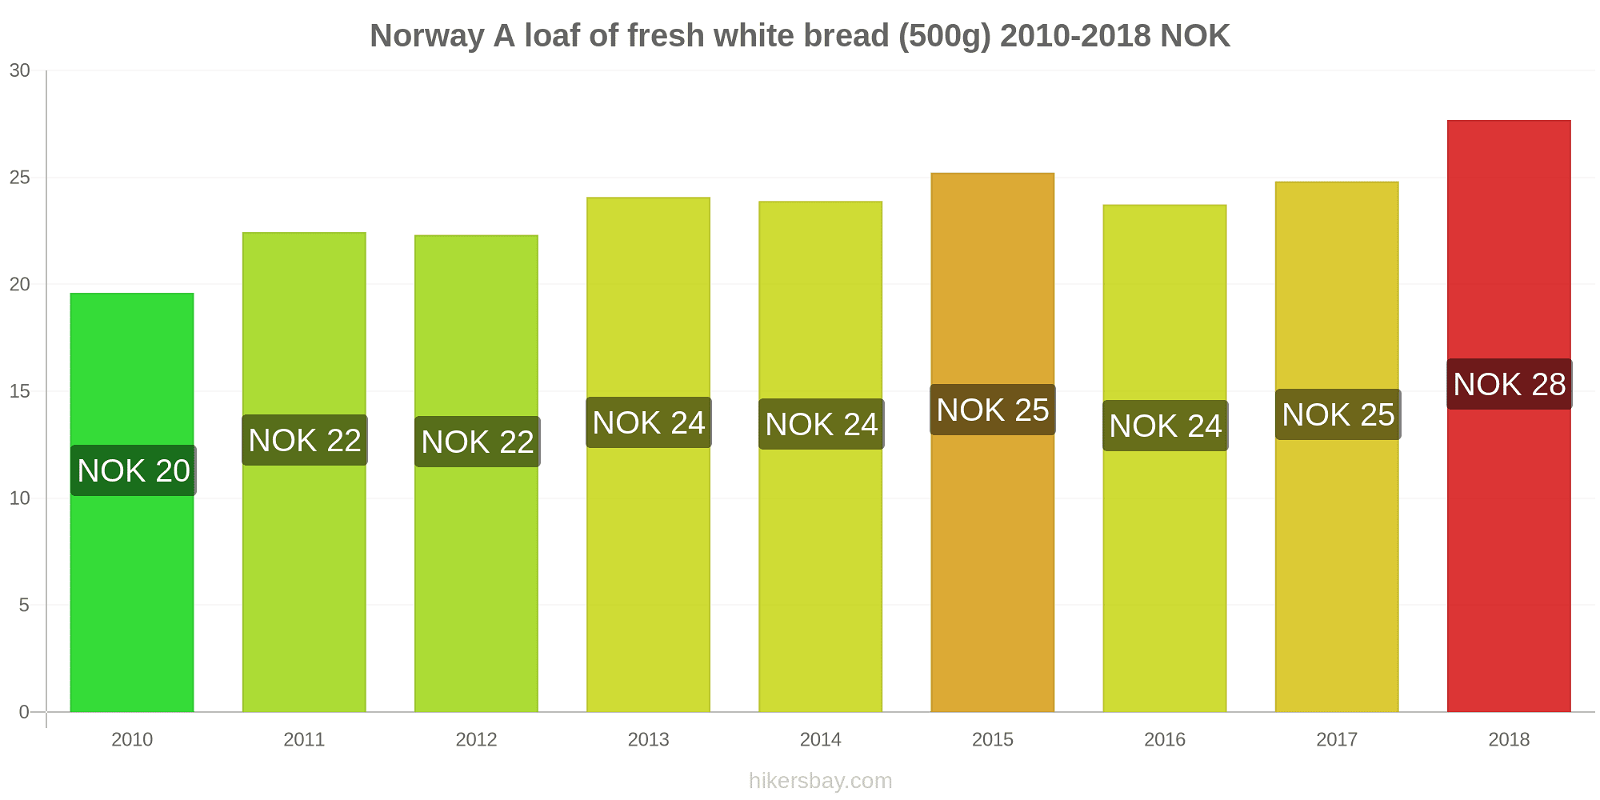 Norway price changes A loaf of fresh white bread (500g) hikersbay.com